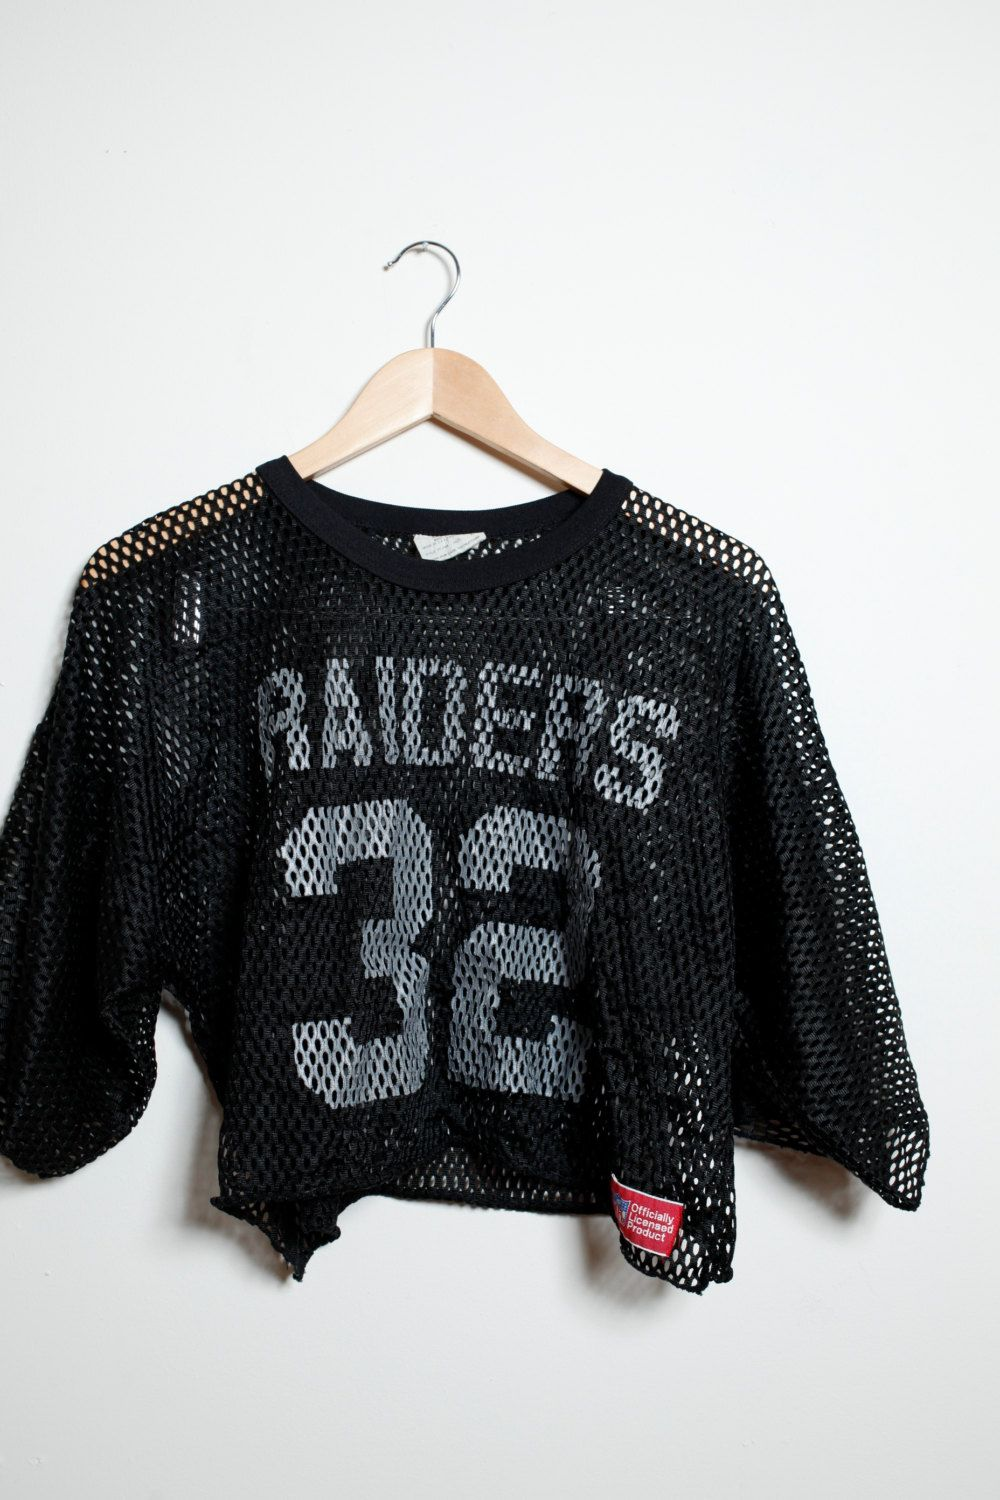 84c14973786e57 Vintage 90s Goth Raiders Mesh Black and White Crop Top NFL Jersey Unisex by  LipstickDinosaur on Etsy